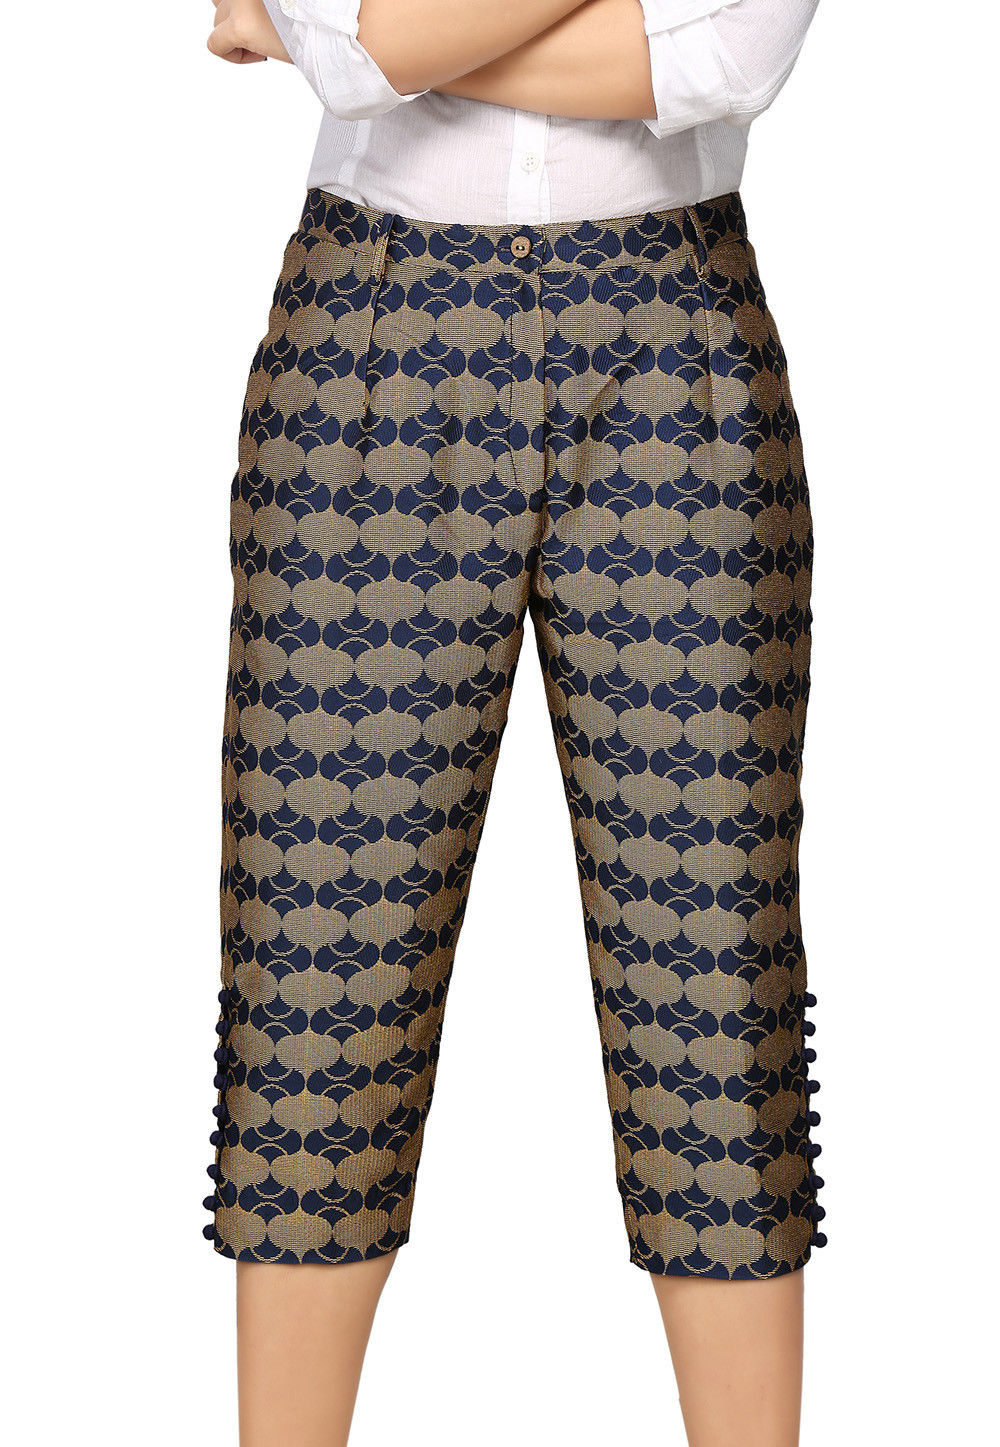 Brocade Capri in Blue and Beige